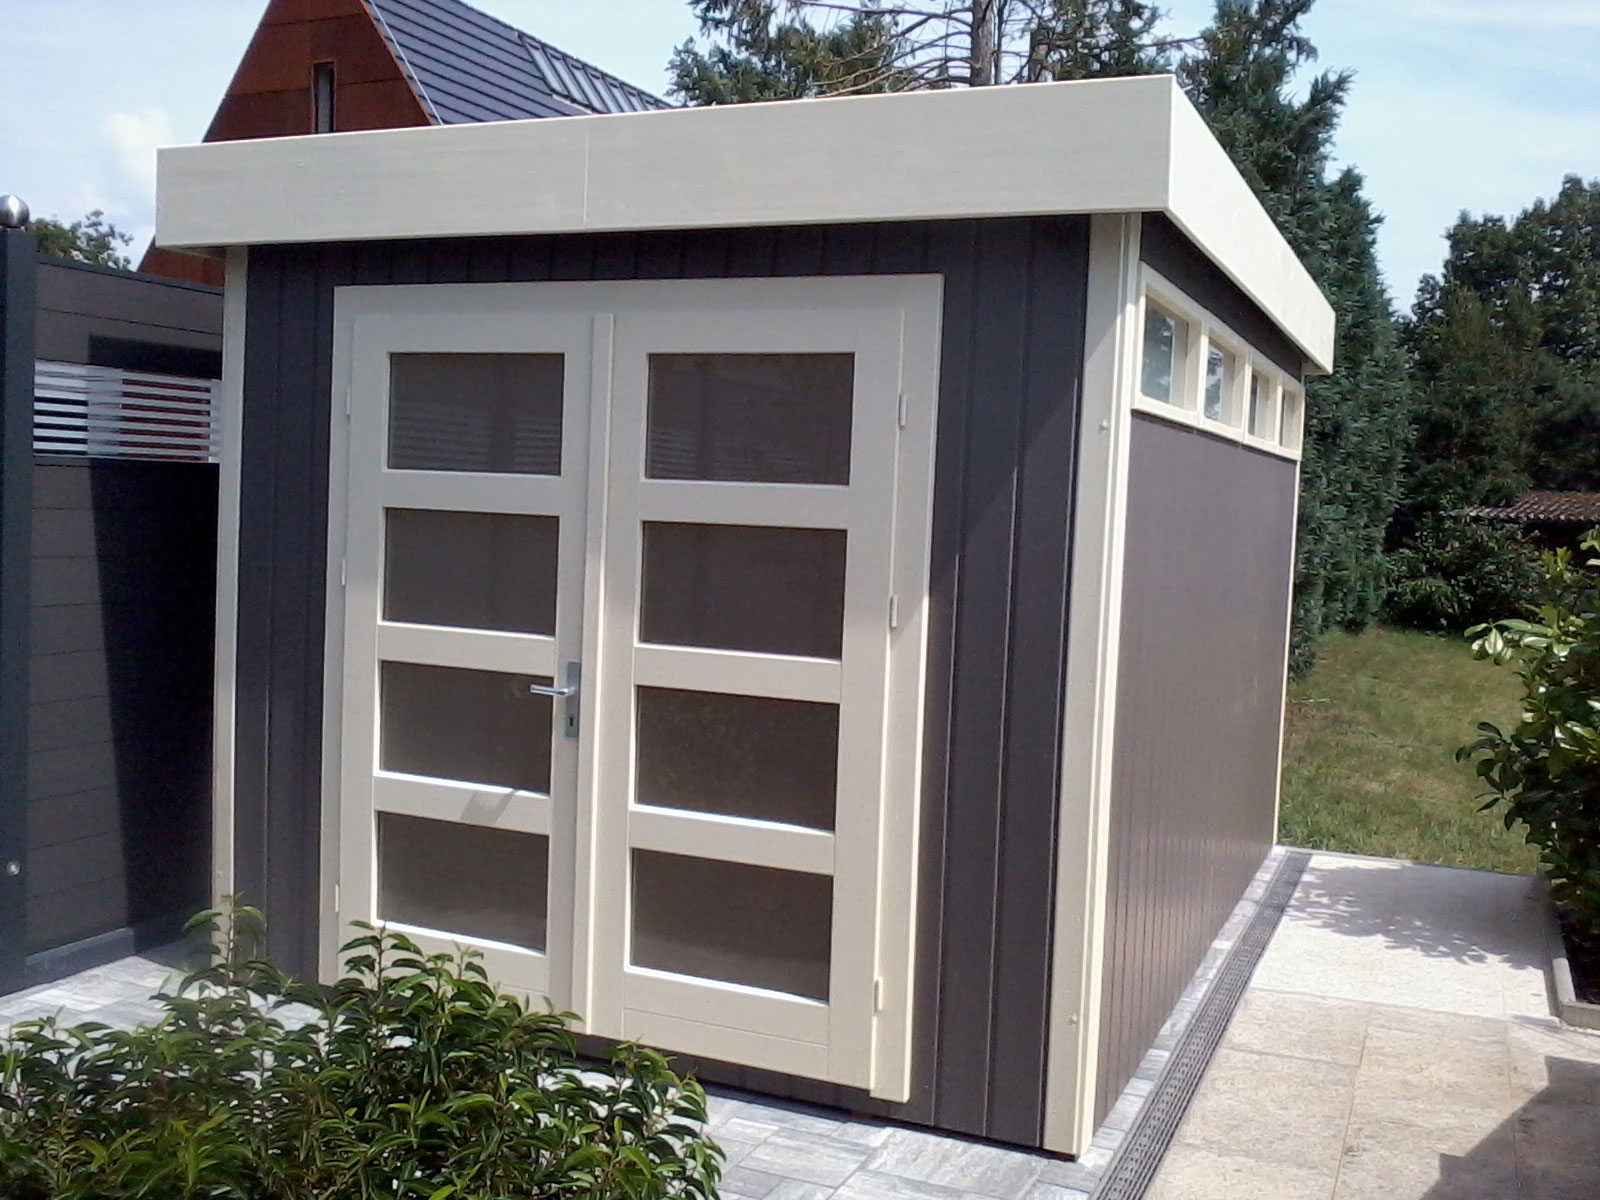 keilholzbau gartenhaus blockhaus ger tehaus pavillon carport. Black Bedroom Furniture Sets. Home Design Ideas